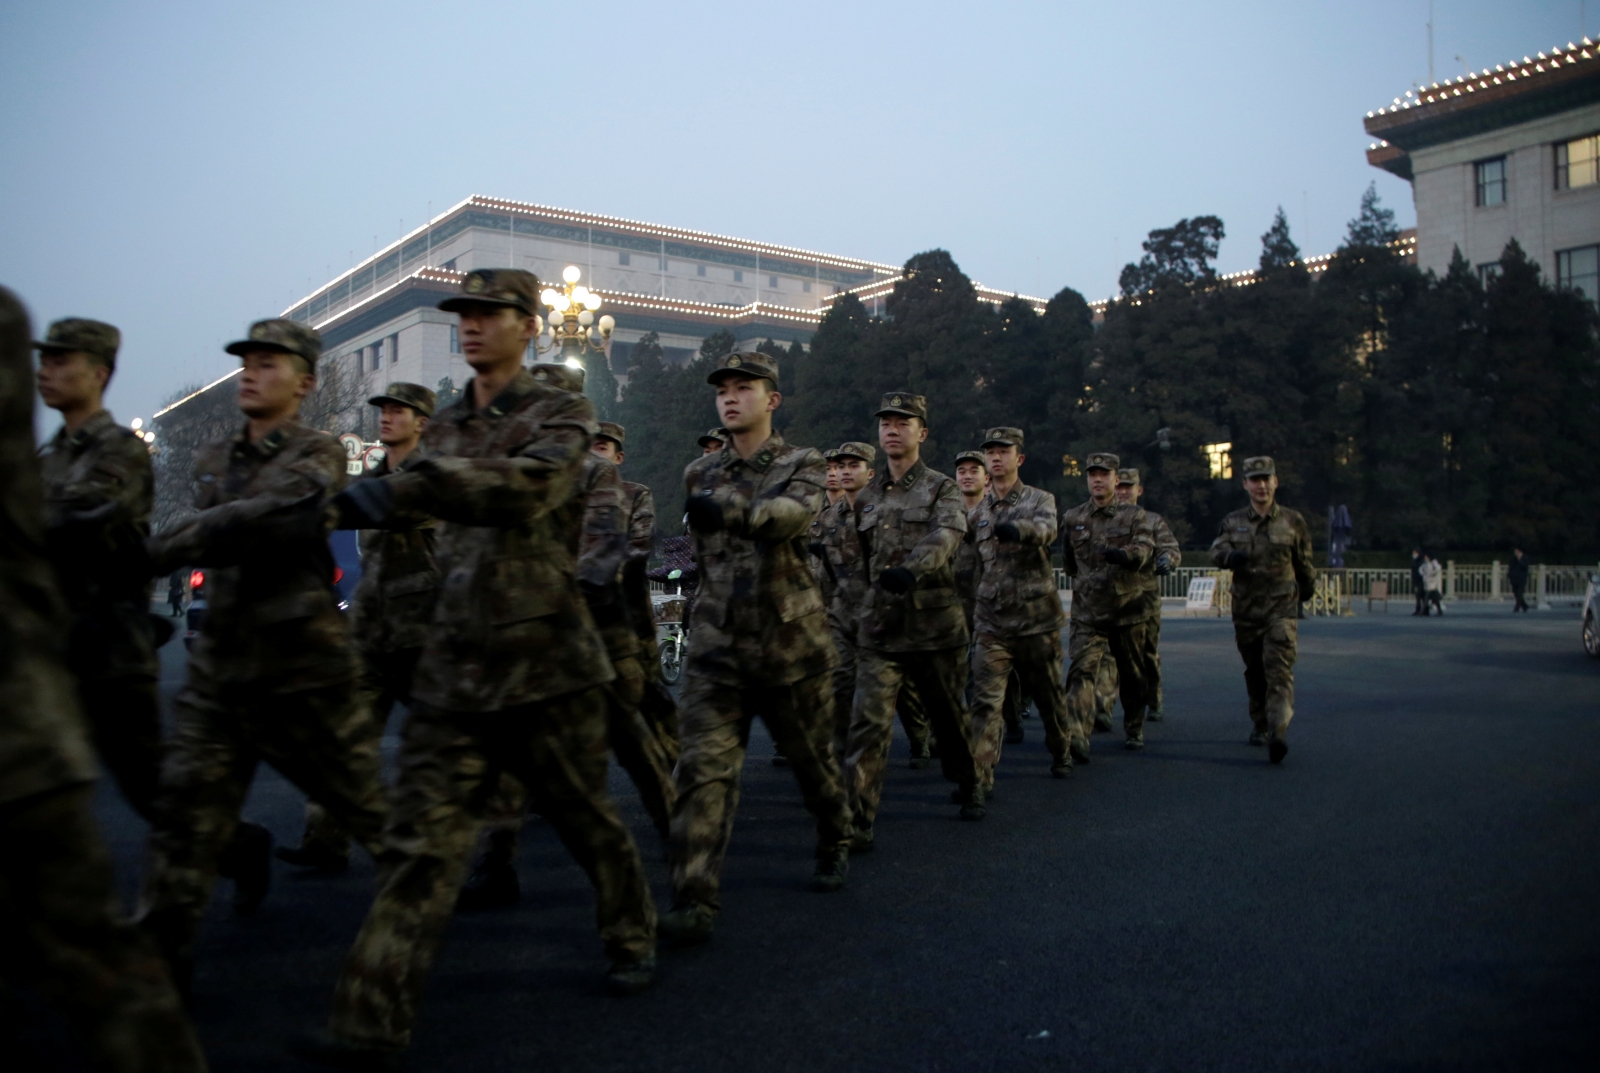 China veterans pension protest